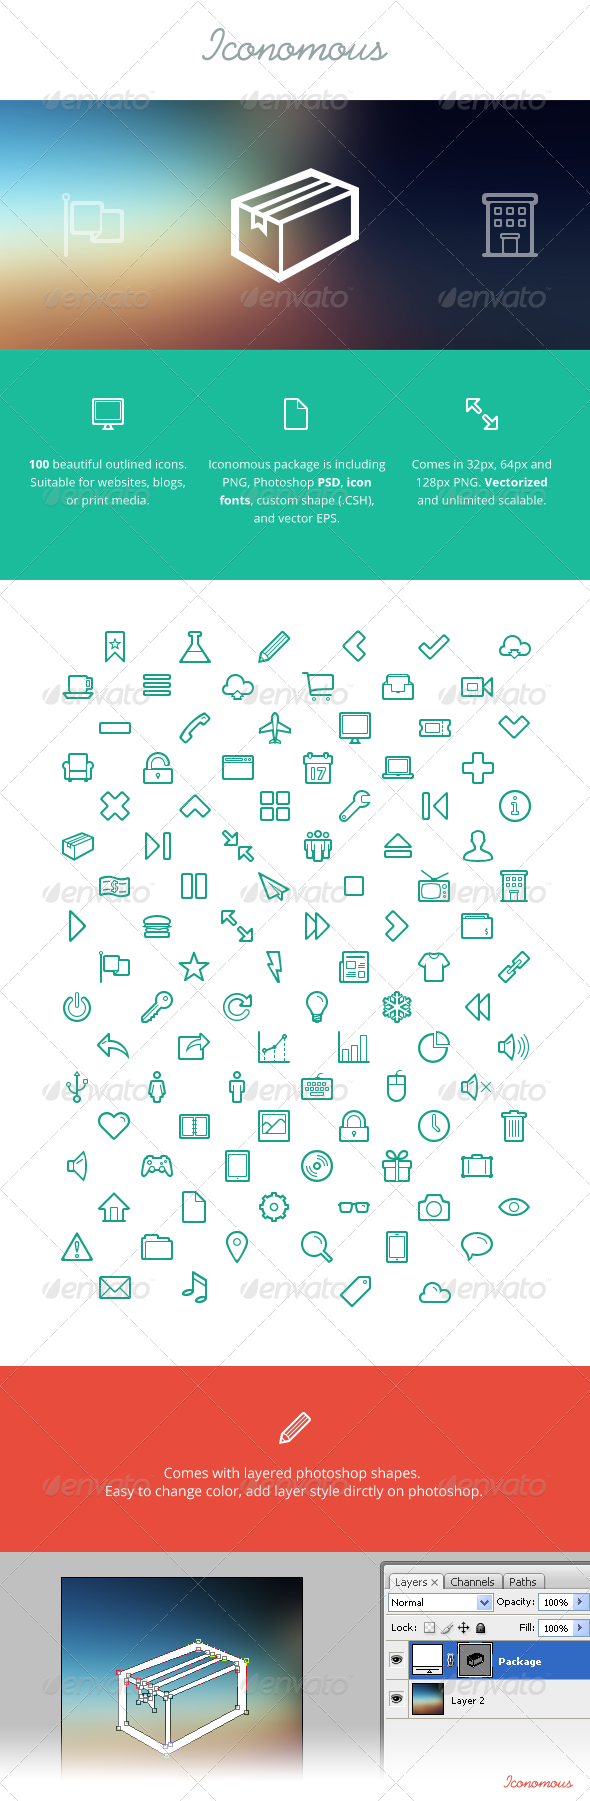 GraphicRiver Iconomous - 100 Outlined Icons